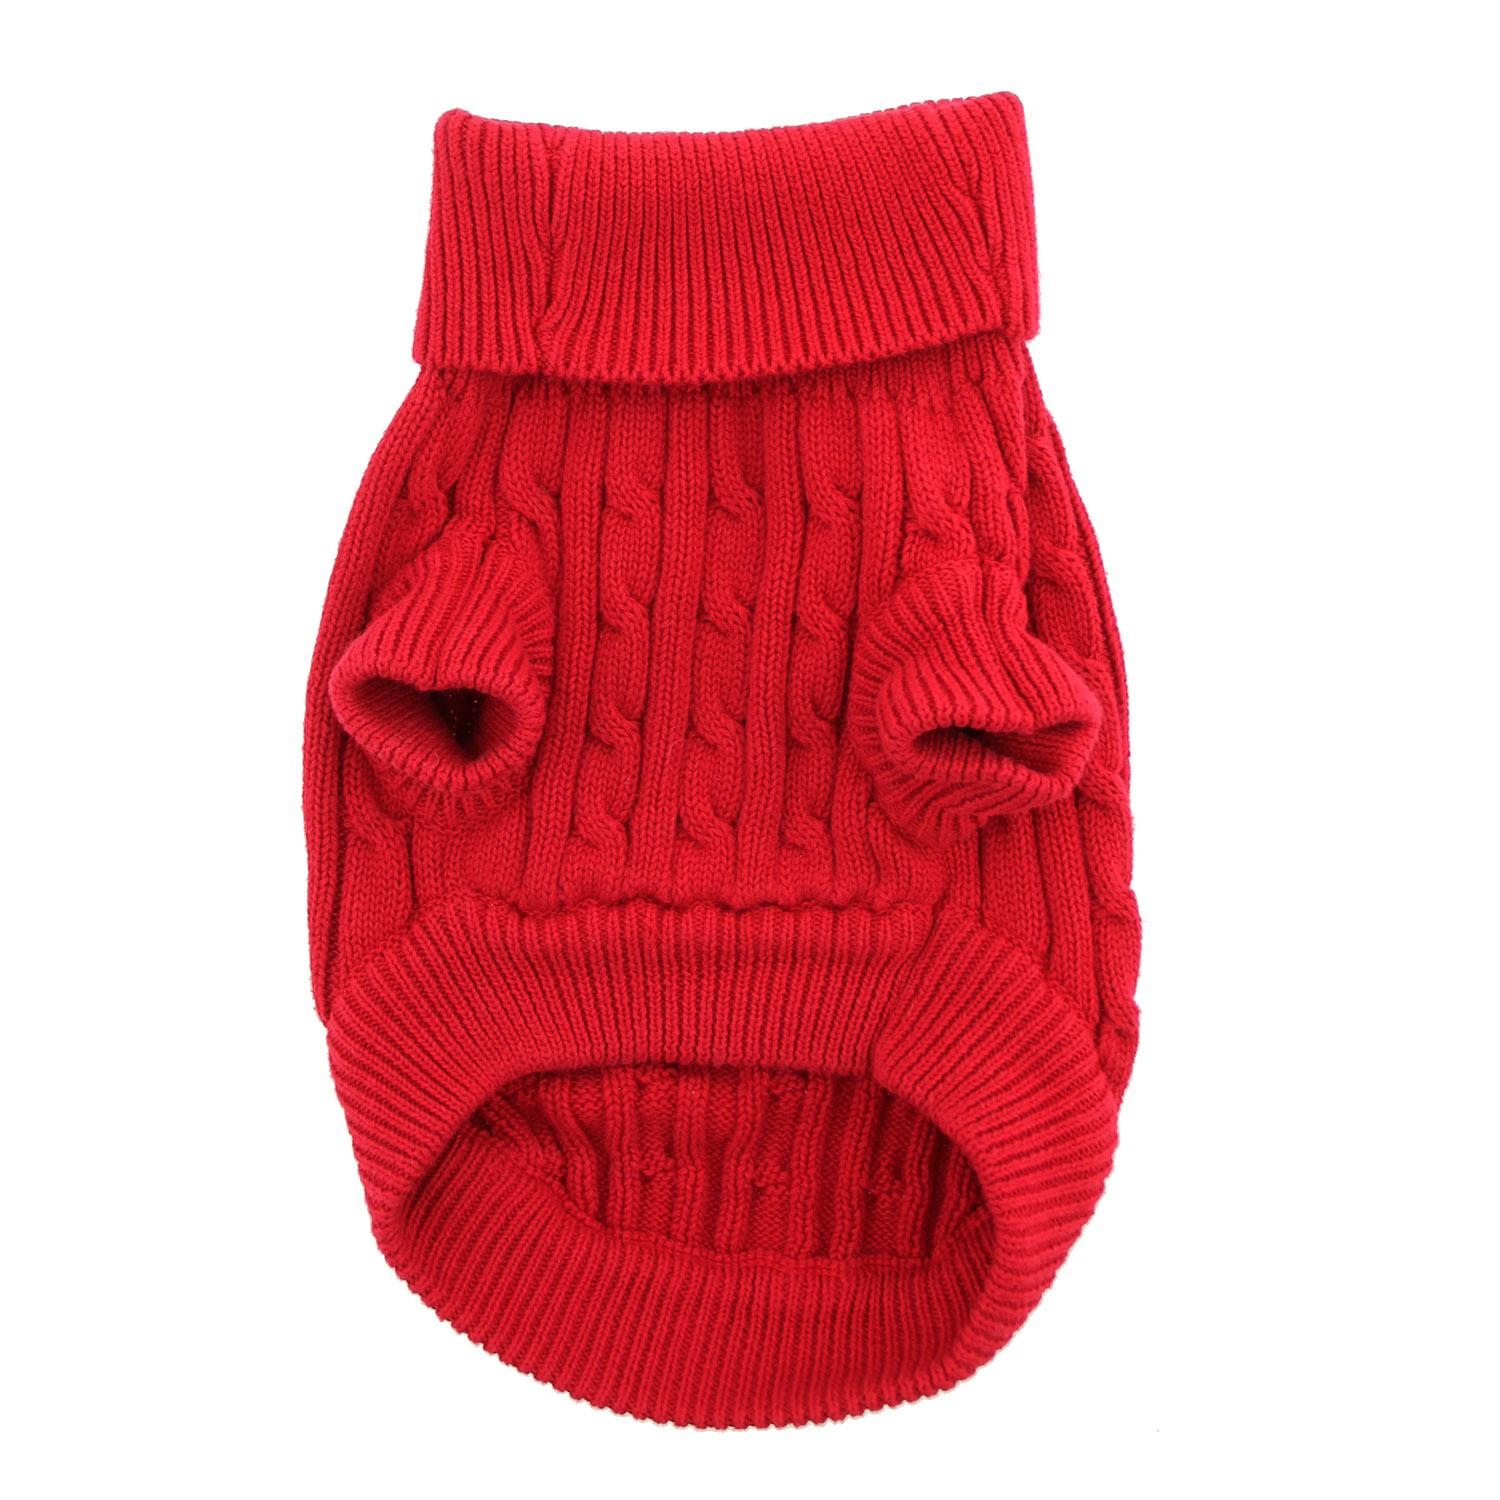 Doggie Design Cotton Dog Sweater, Cable Knit Fiery Red, XX-Small